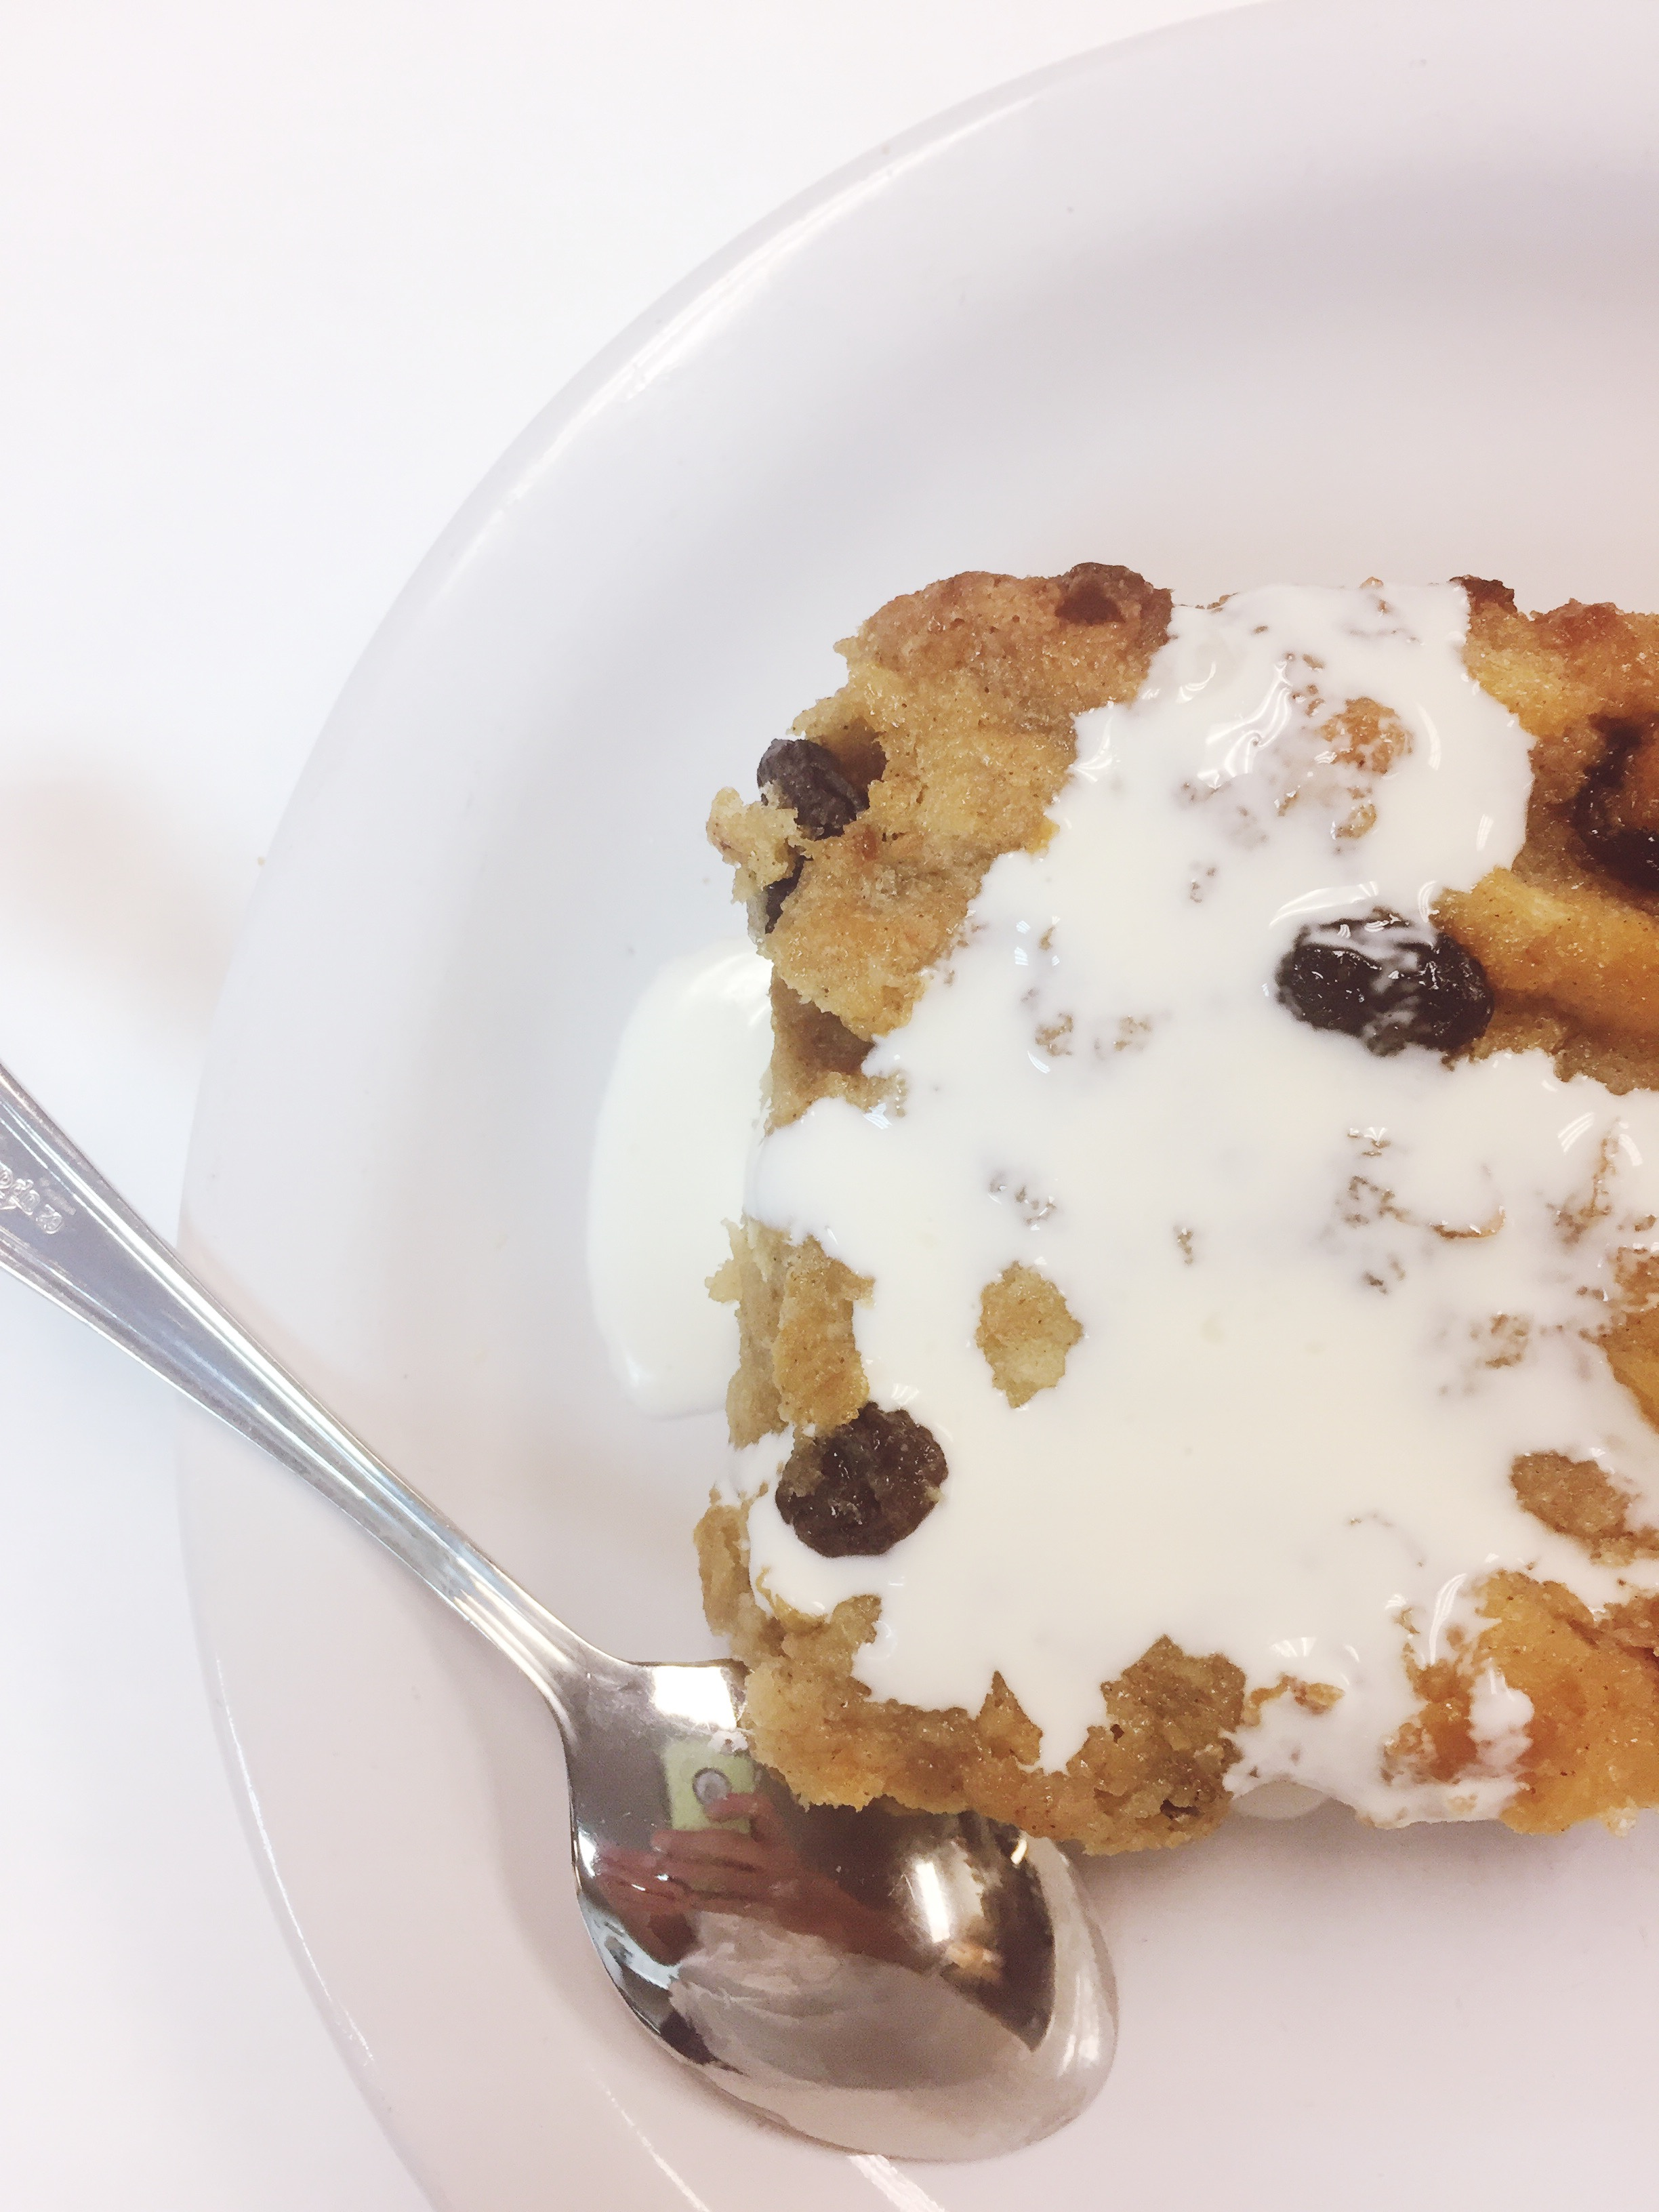 NEW ORLEANS BREAD PUDDING  Housemade Bread Pudding made with Leidenheimer French bread with a rich Whiskey Cream Sauce  $40/9 servings